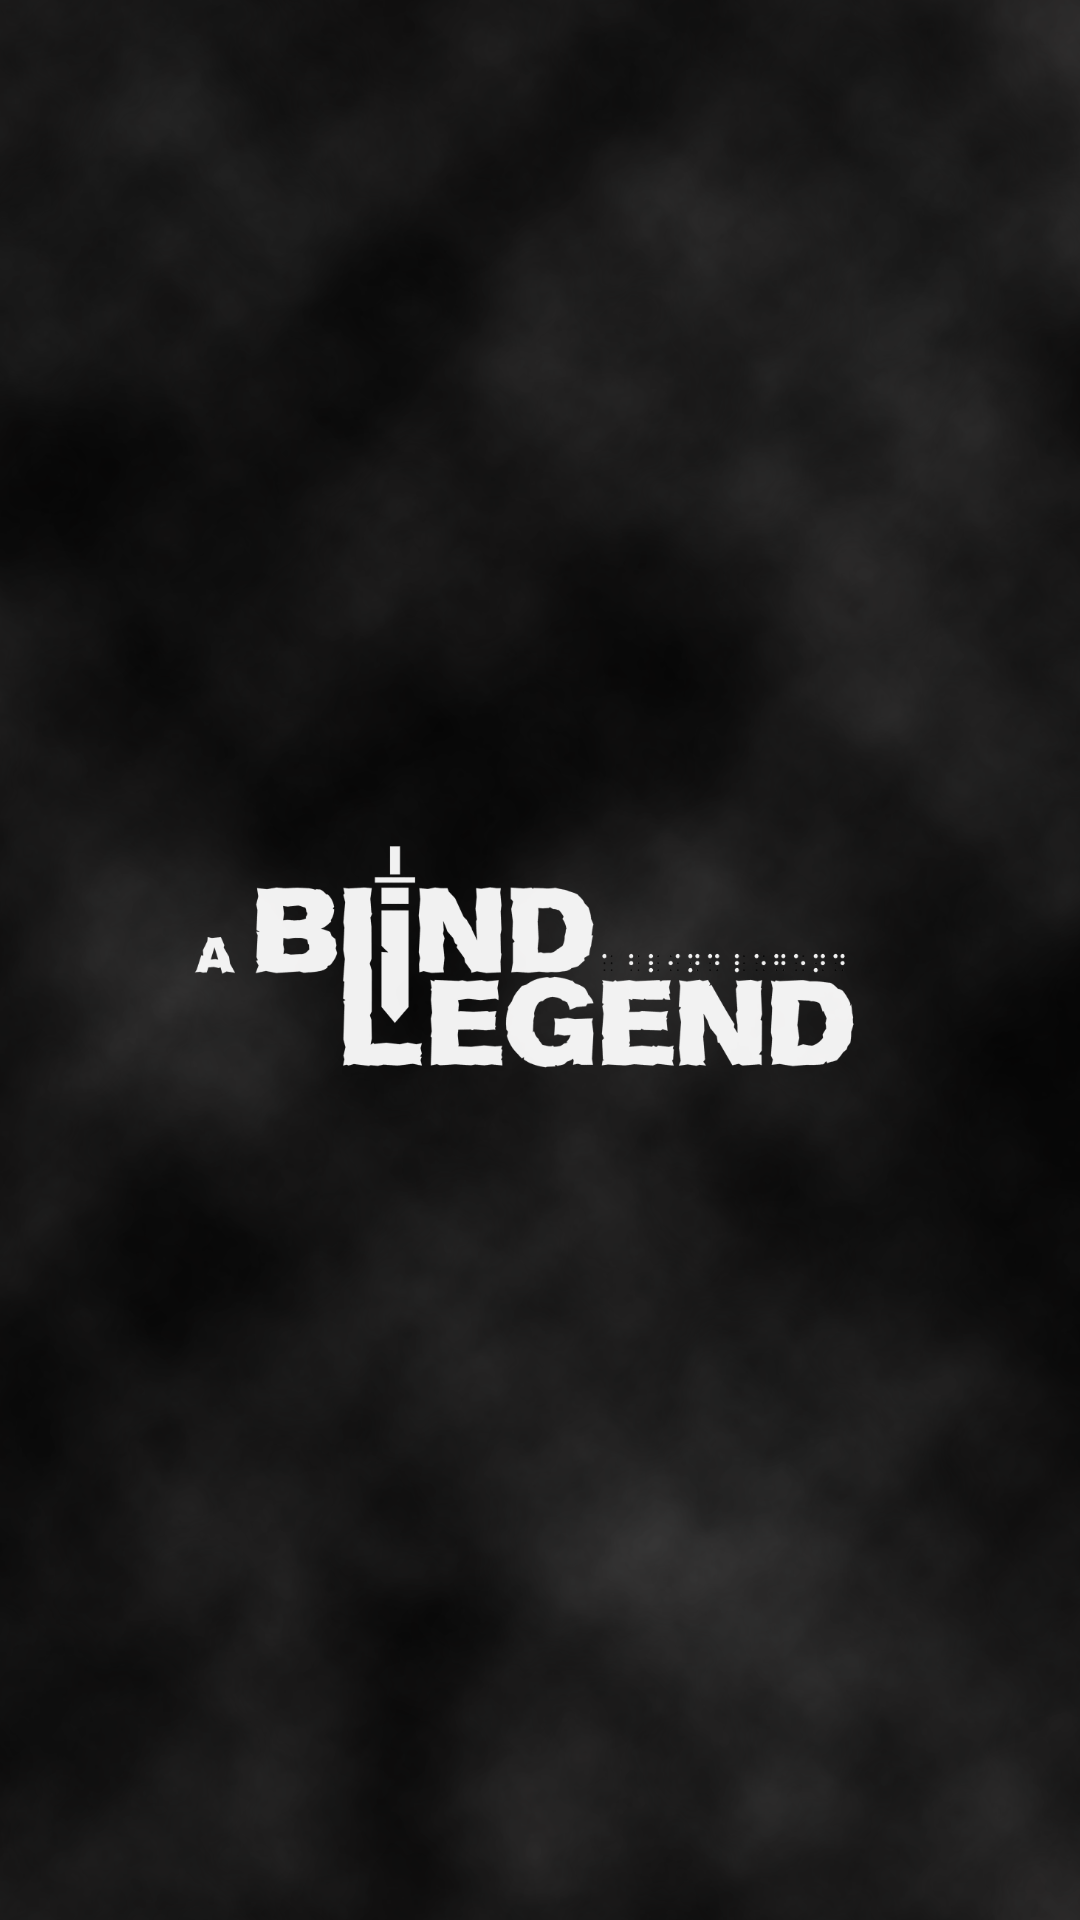 androidアプリ A Blind Legend【音だけRPG】攻略スクリーンショット7